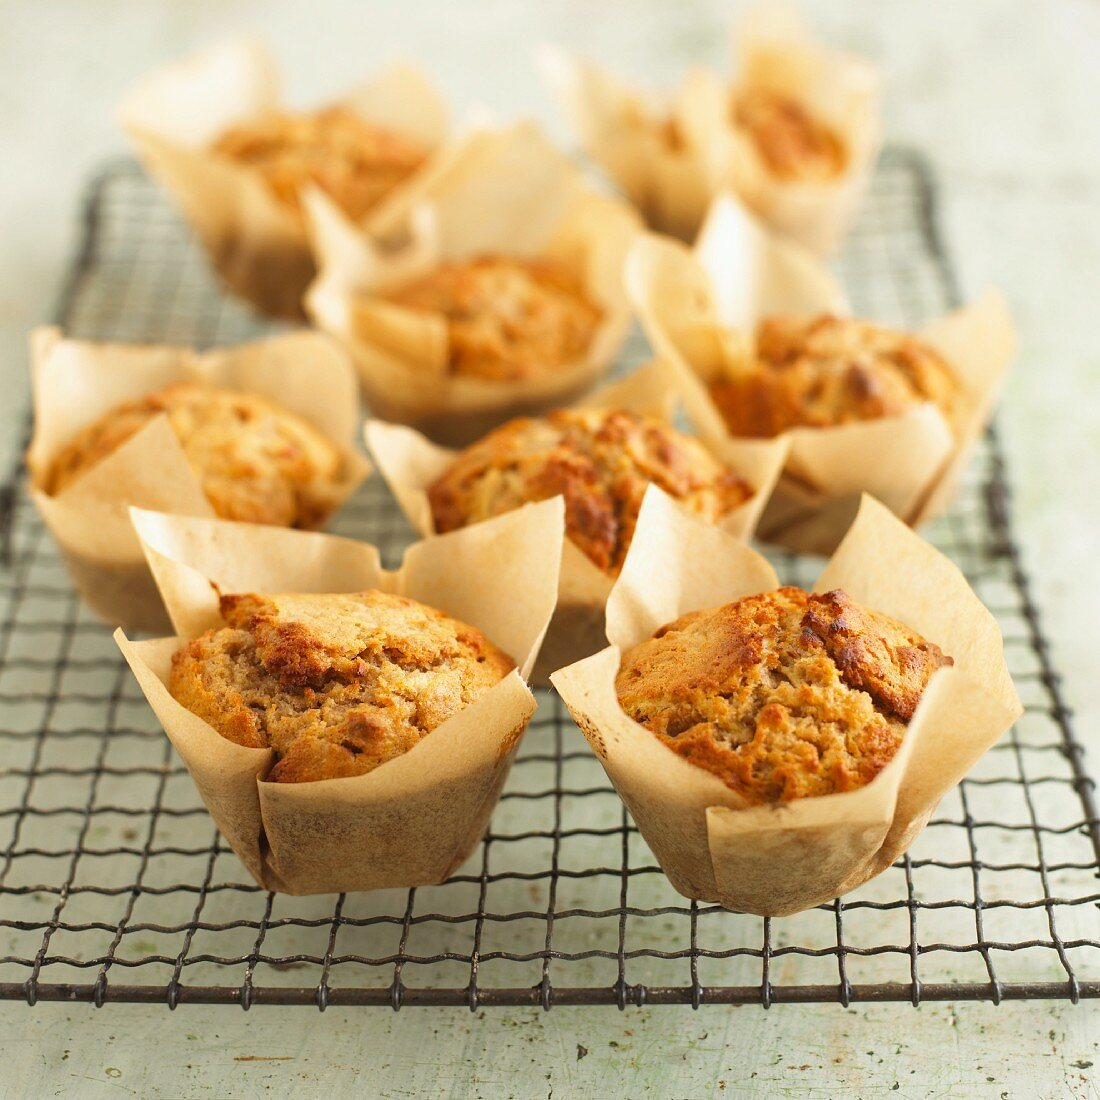 Several apple & walnut muffins in baking parchment on a wire rack